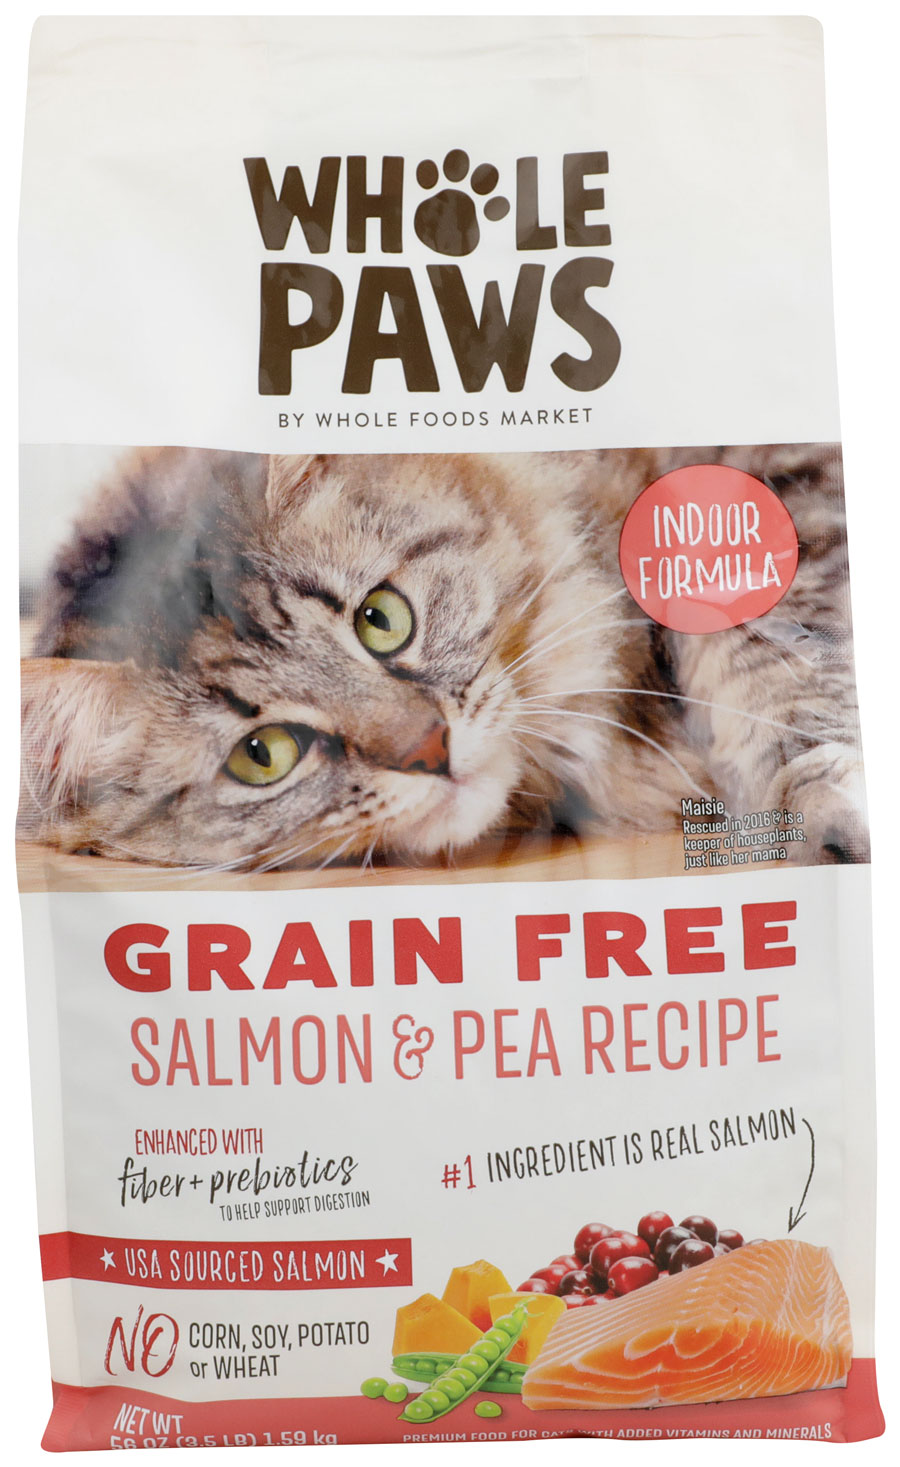 Prodcut images of Whole Paws Indoor Salmon & Pea Recipe